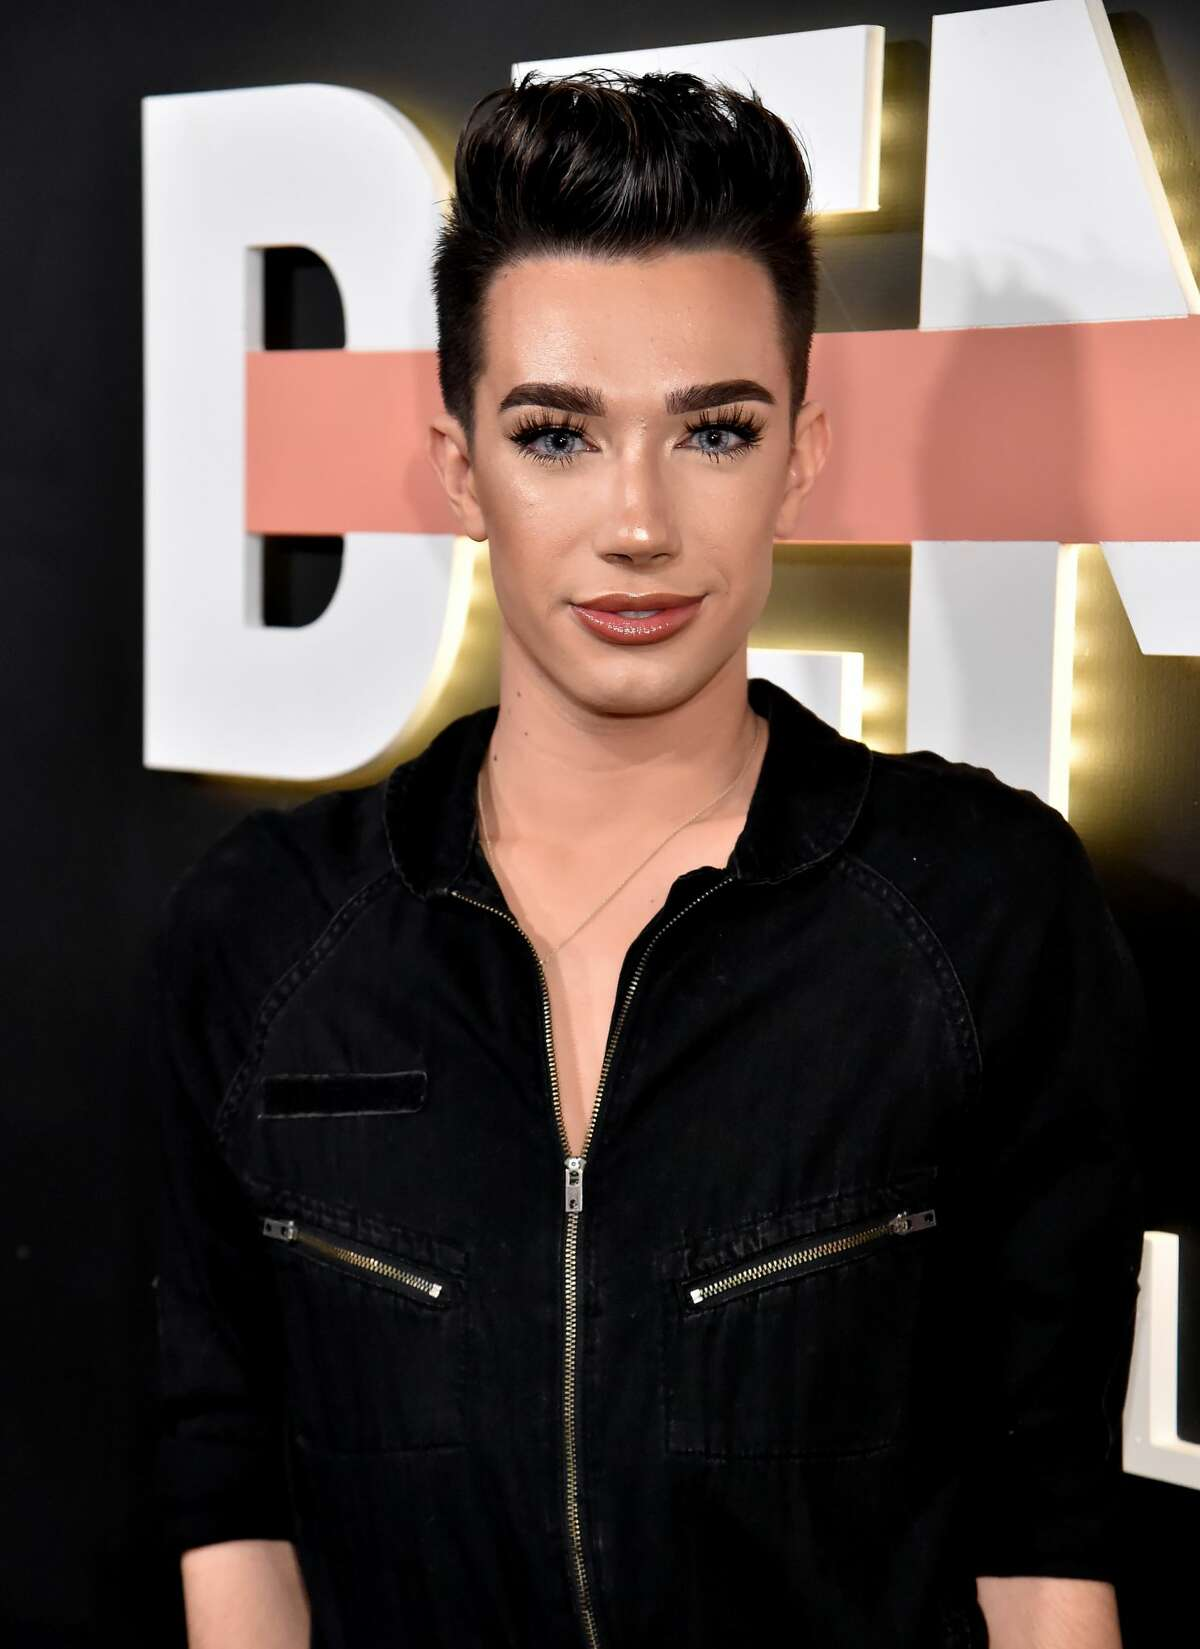 """LOS ANGELES, CA - OCTOBER 11: James Charles attends the """"Demi Lovato: Simply Complicated"""" YouTube premiere at The Fonda Theatre on October 11, 2017 in Los Angeles, California. (Photo by Jeff Kravitz/FilmMagic for YouTube)"""